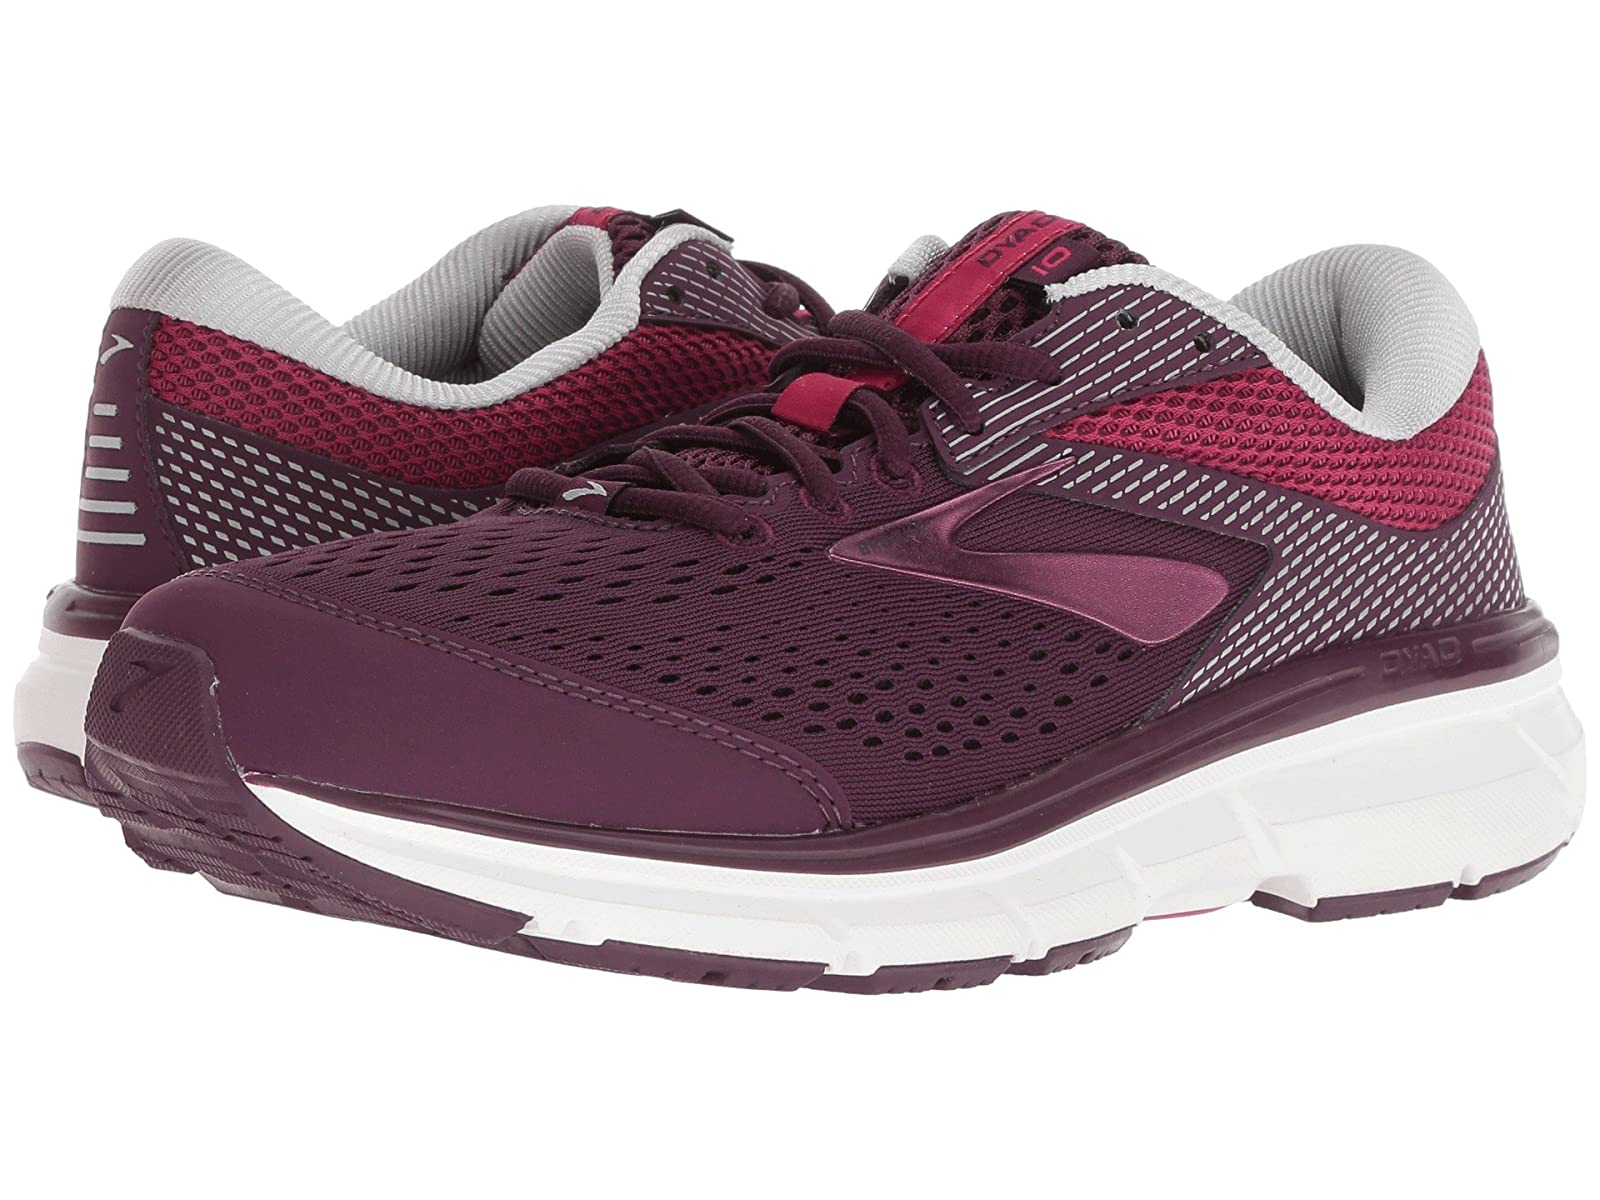 Brooks Dyad 10Atmospheric grades have affordable shoes